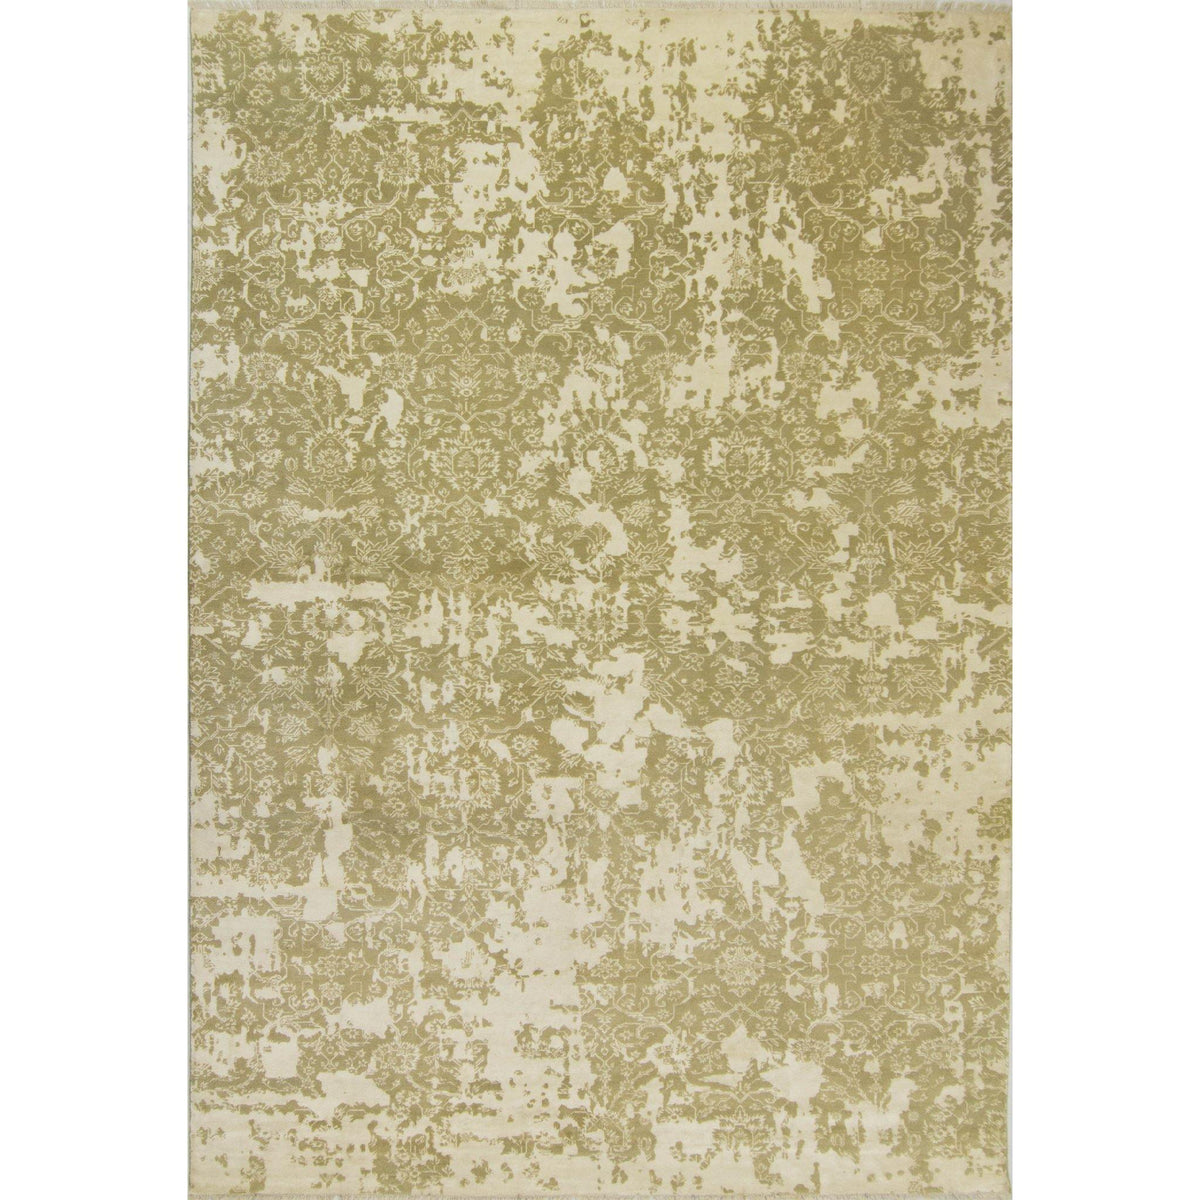 Modern Wool & Silk Picasso Design Rug 289cm x 440cm Persian-Rug | House-of-Haghi | NewMarket | Auckland | NZ | Handmade Persian Rugs | Hand Knotted Persian Rugs